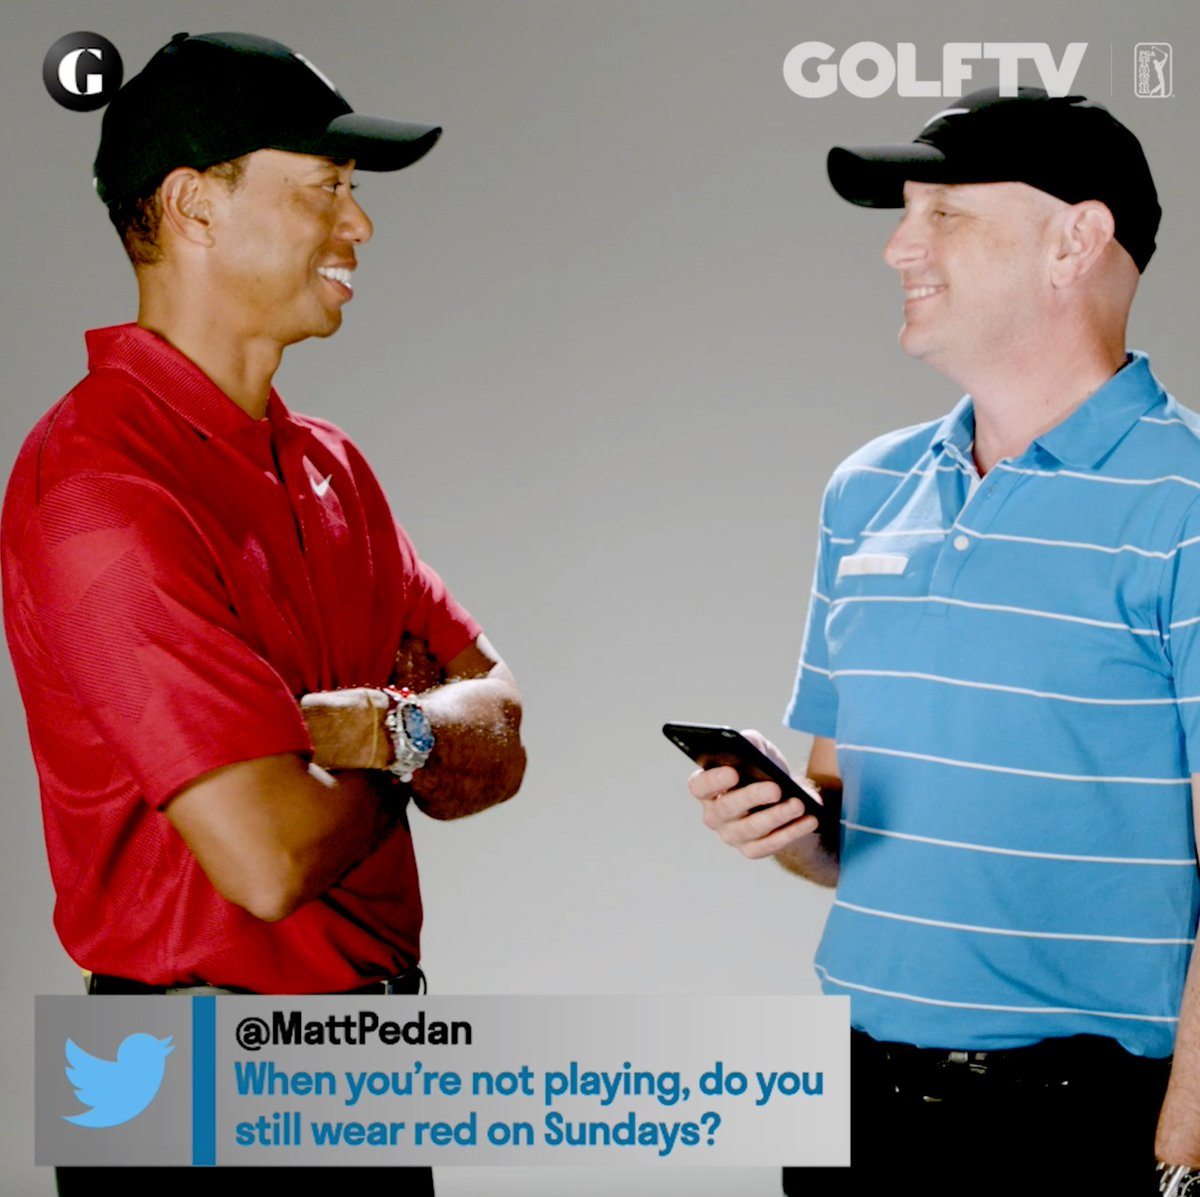 Hoping to answer more of your questions soon. In the meantime, here's another #AskTiger episode.